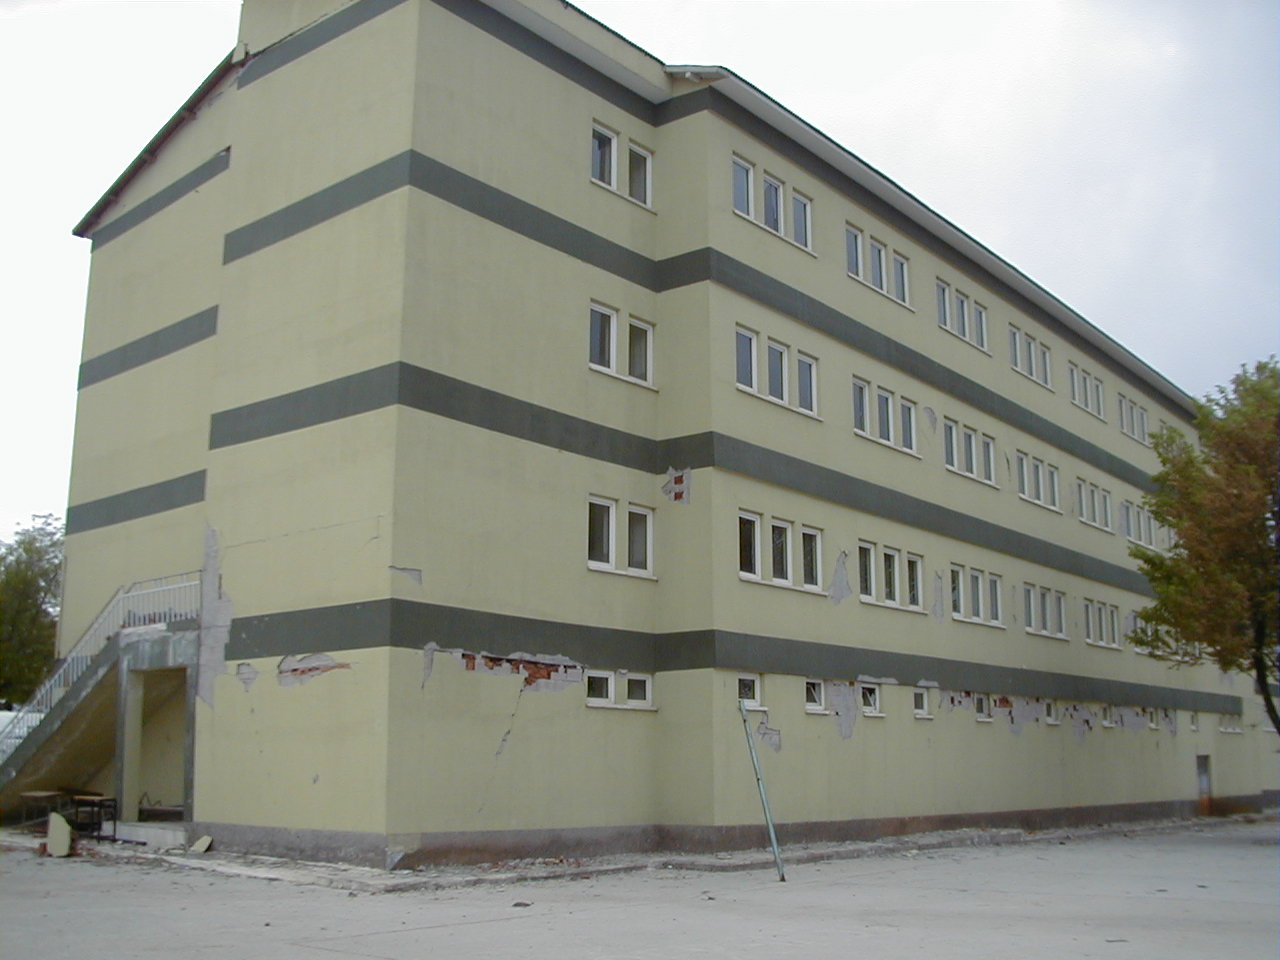 Back view of Building B after the earthquake (Retrieved from AnatolianQuake.org).